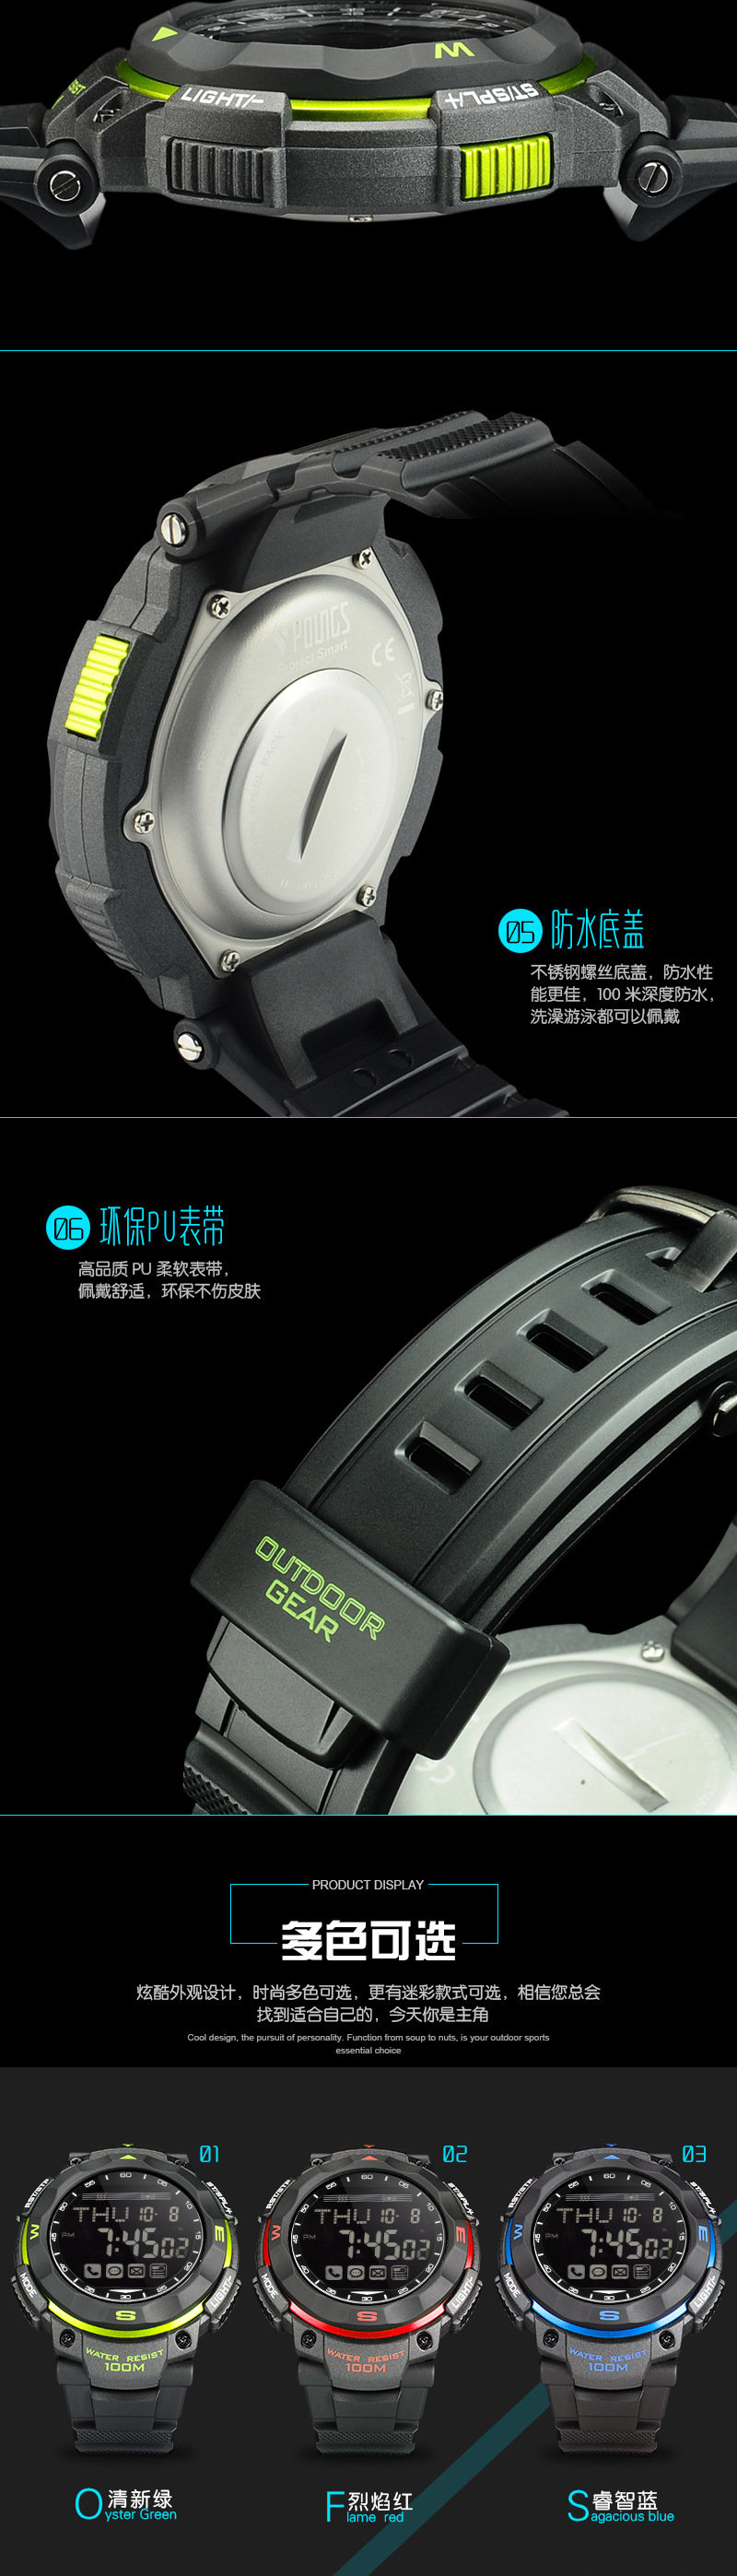 Bluetooth Outdoor Smart Watch Waterproof Message Remind Sync Call Find Phone SOS Pacer Wristwatch for Smartphone